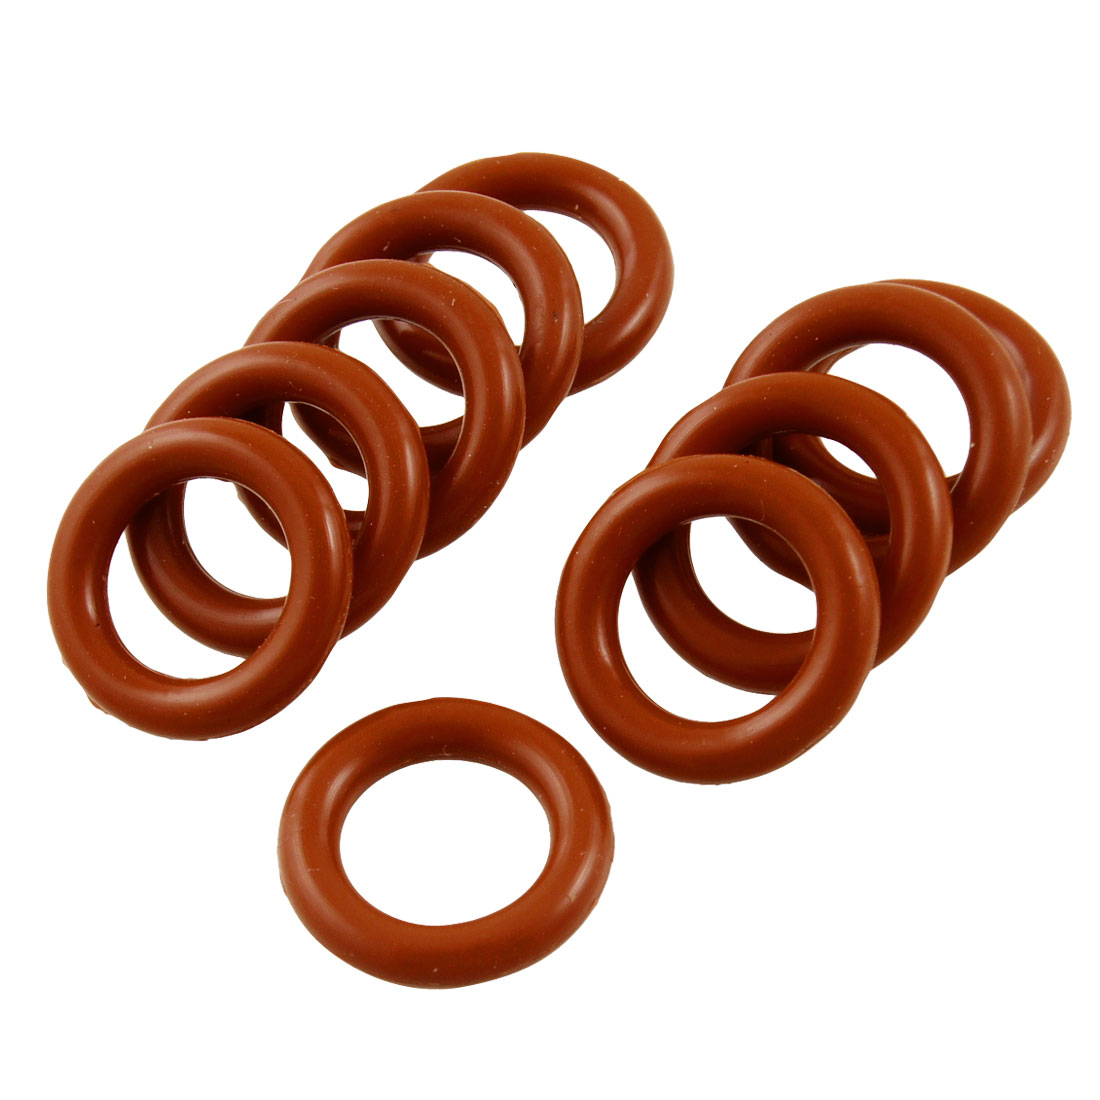 10 Pcs Flexible Silicone O Ring Seal Washer Gasket 10mm x 16mm x 3mm